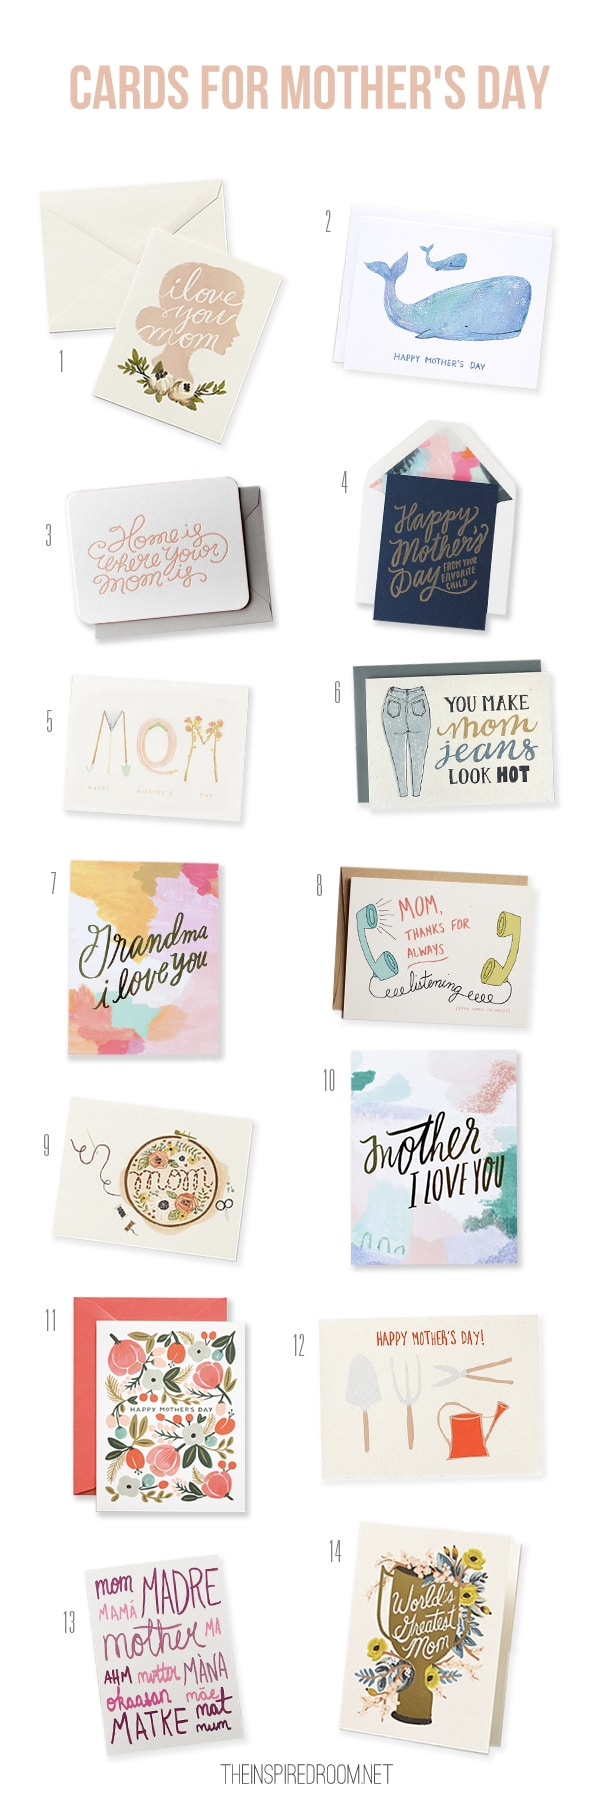 Cards for Mother's Day {Gather}